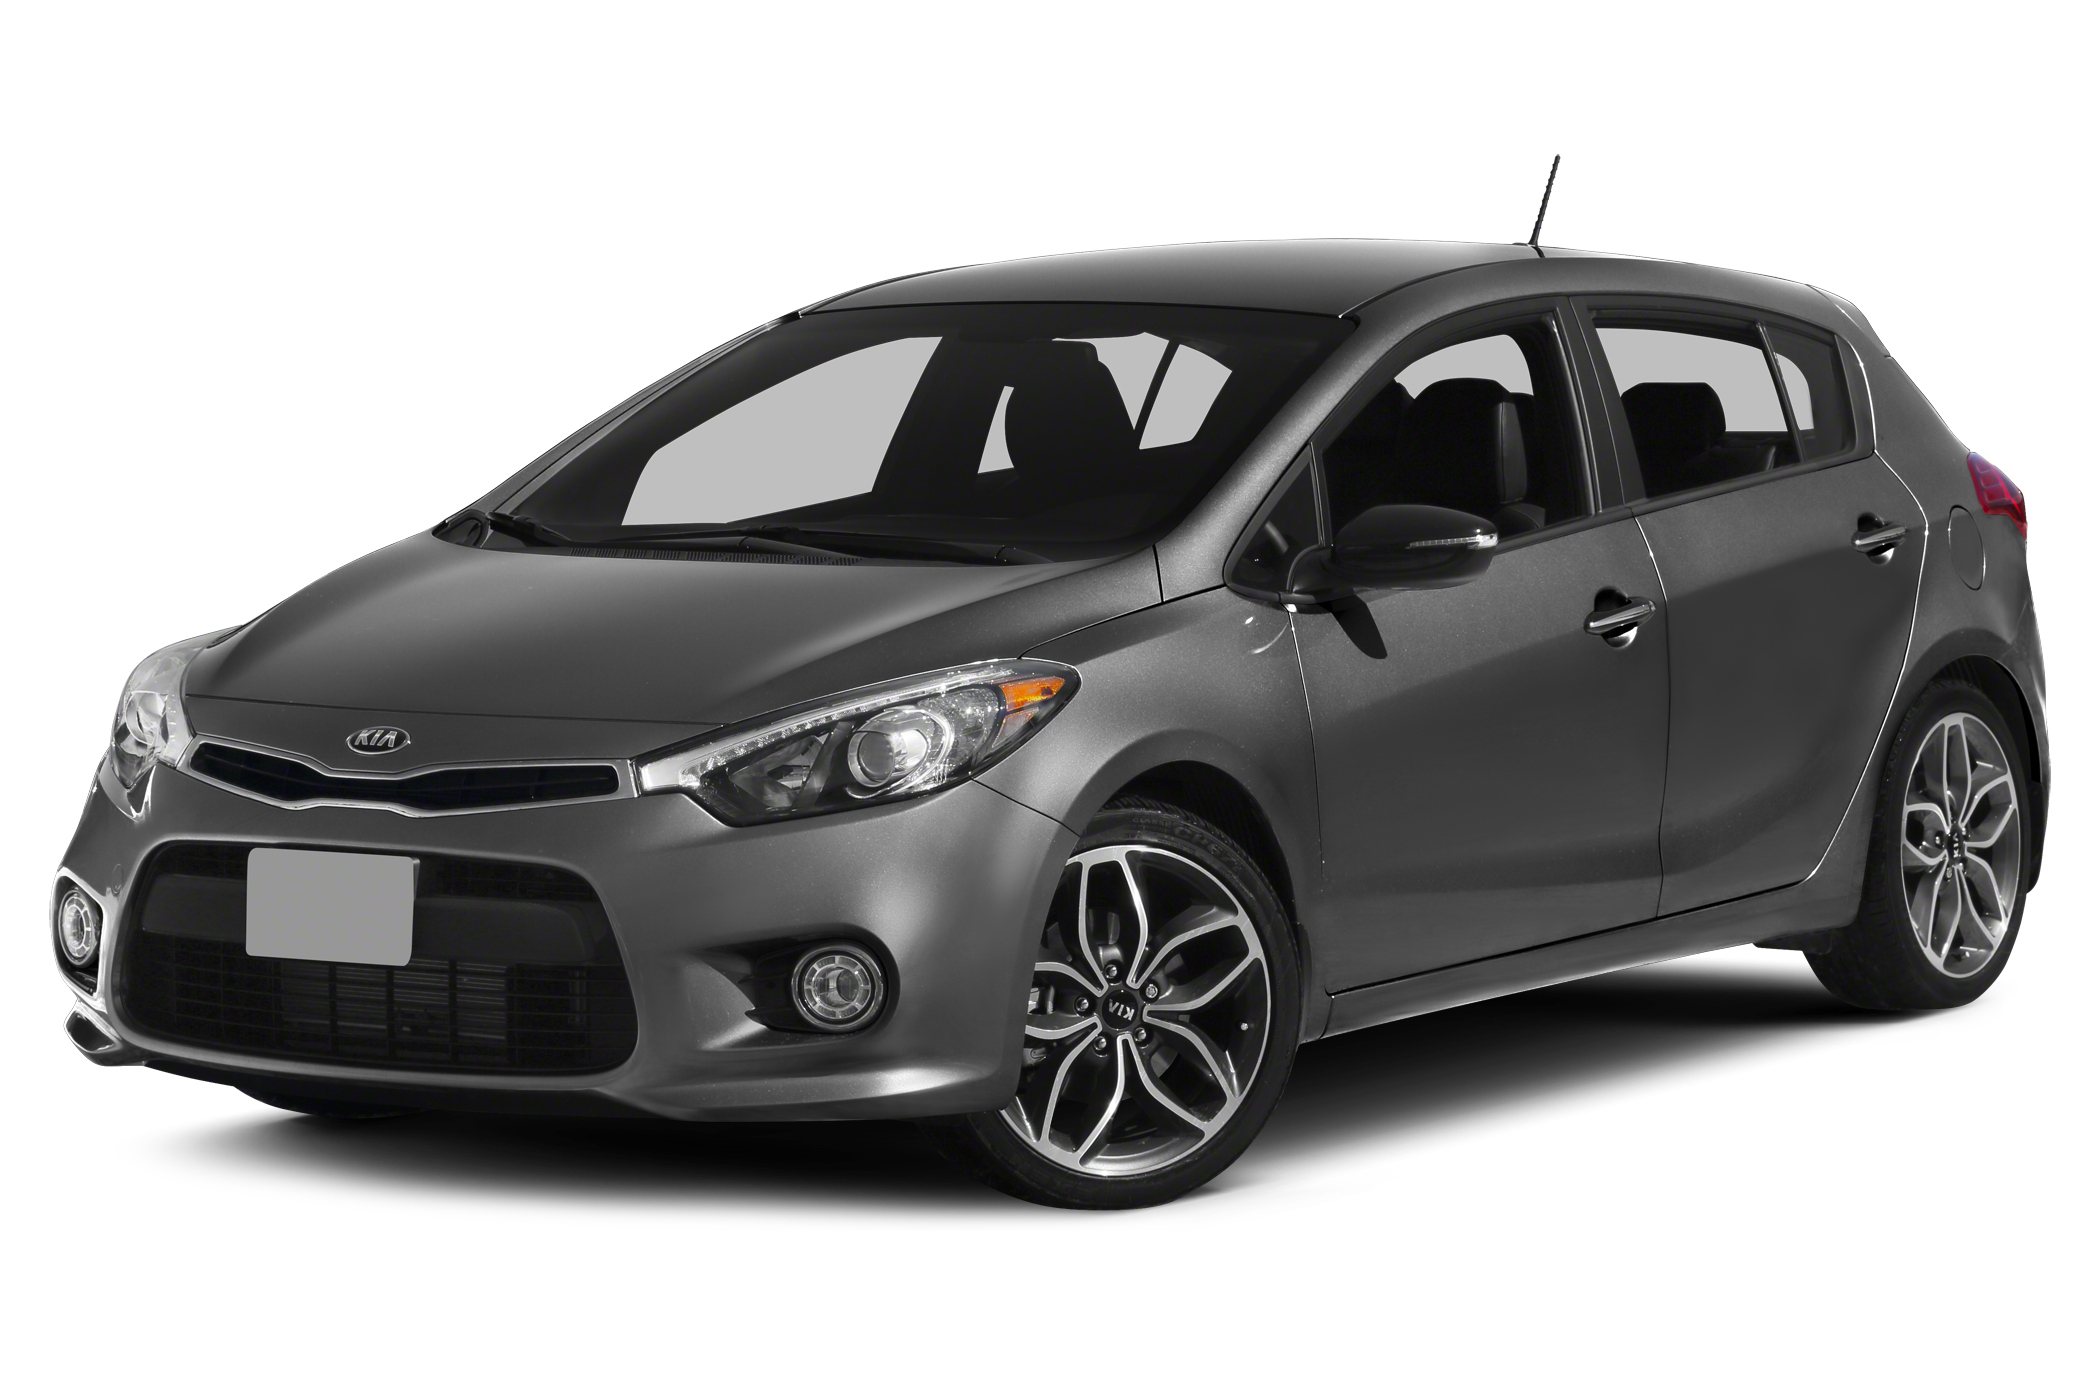 Review 2014 Kia Forte A Thrifty Revise For Popular